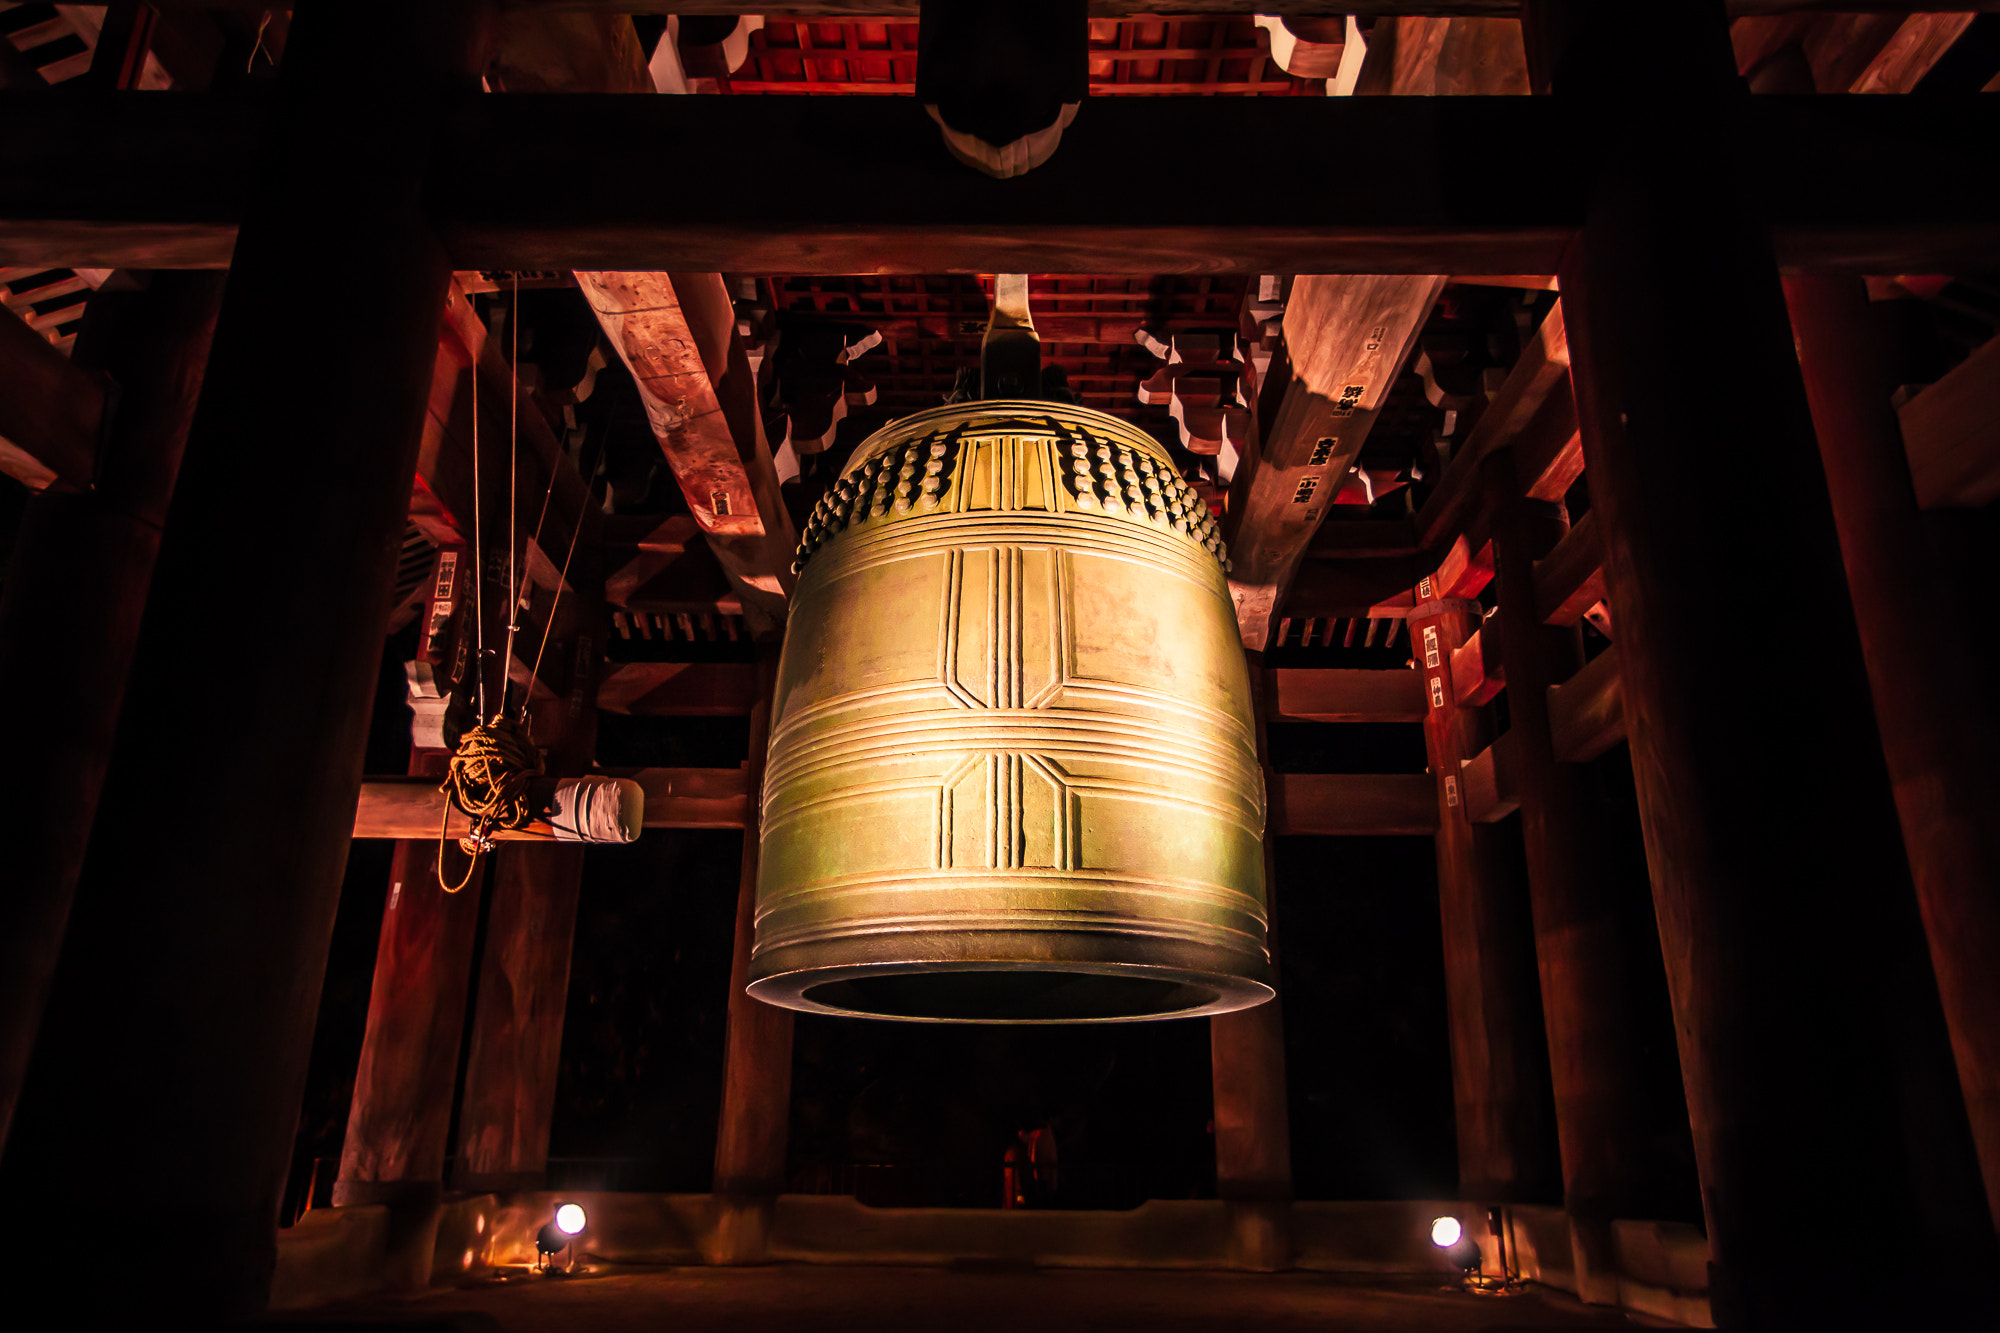 Photograph 鐘 (Bell) by Structuresxx  on 500px